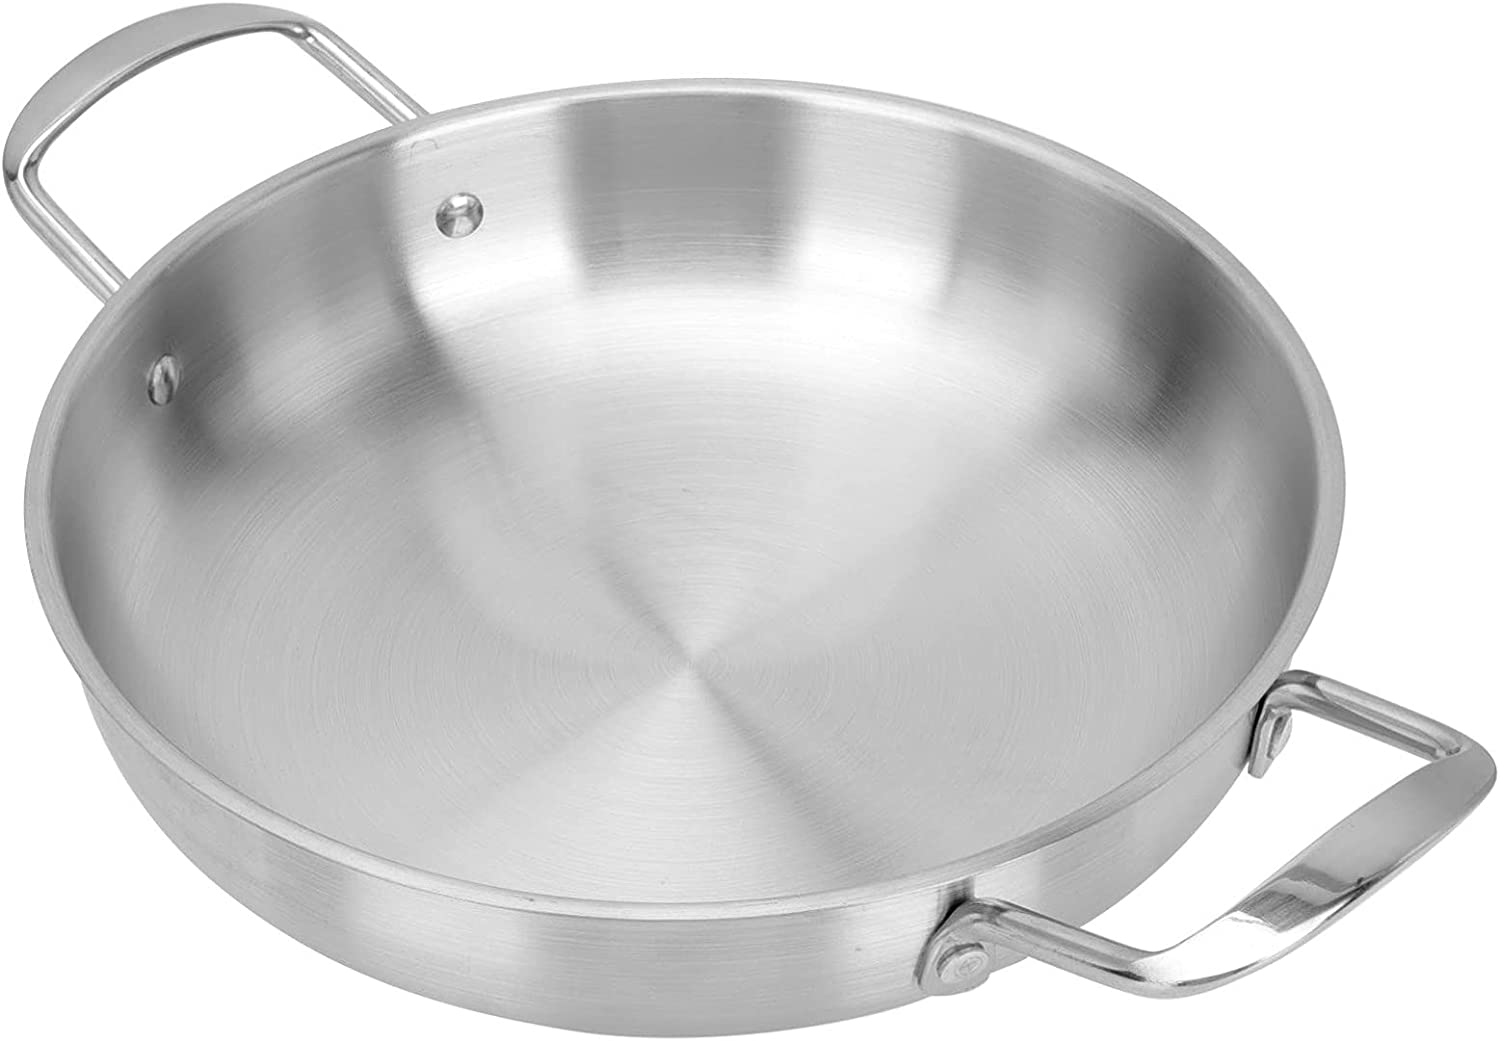 Cabilock 2021new shipping free shipping Steel Low price Skillet Stir- Fry and Stainless Pan Paella